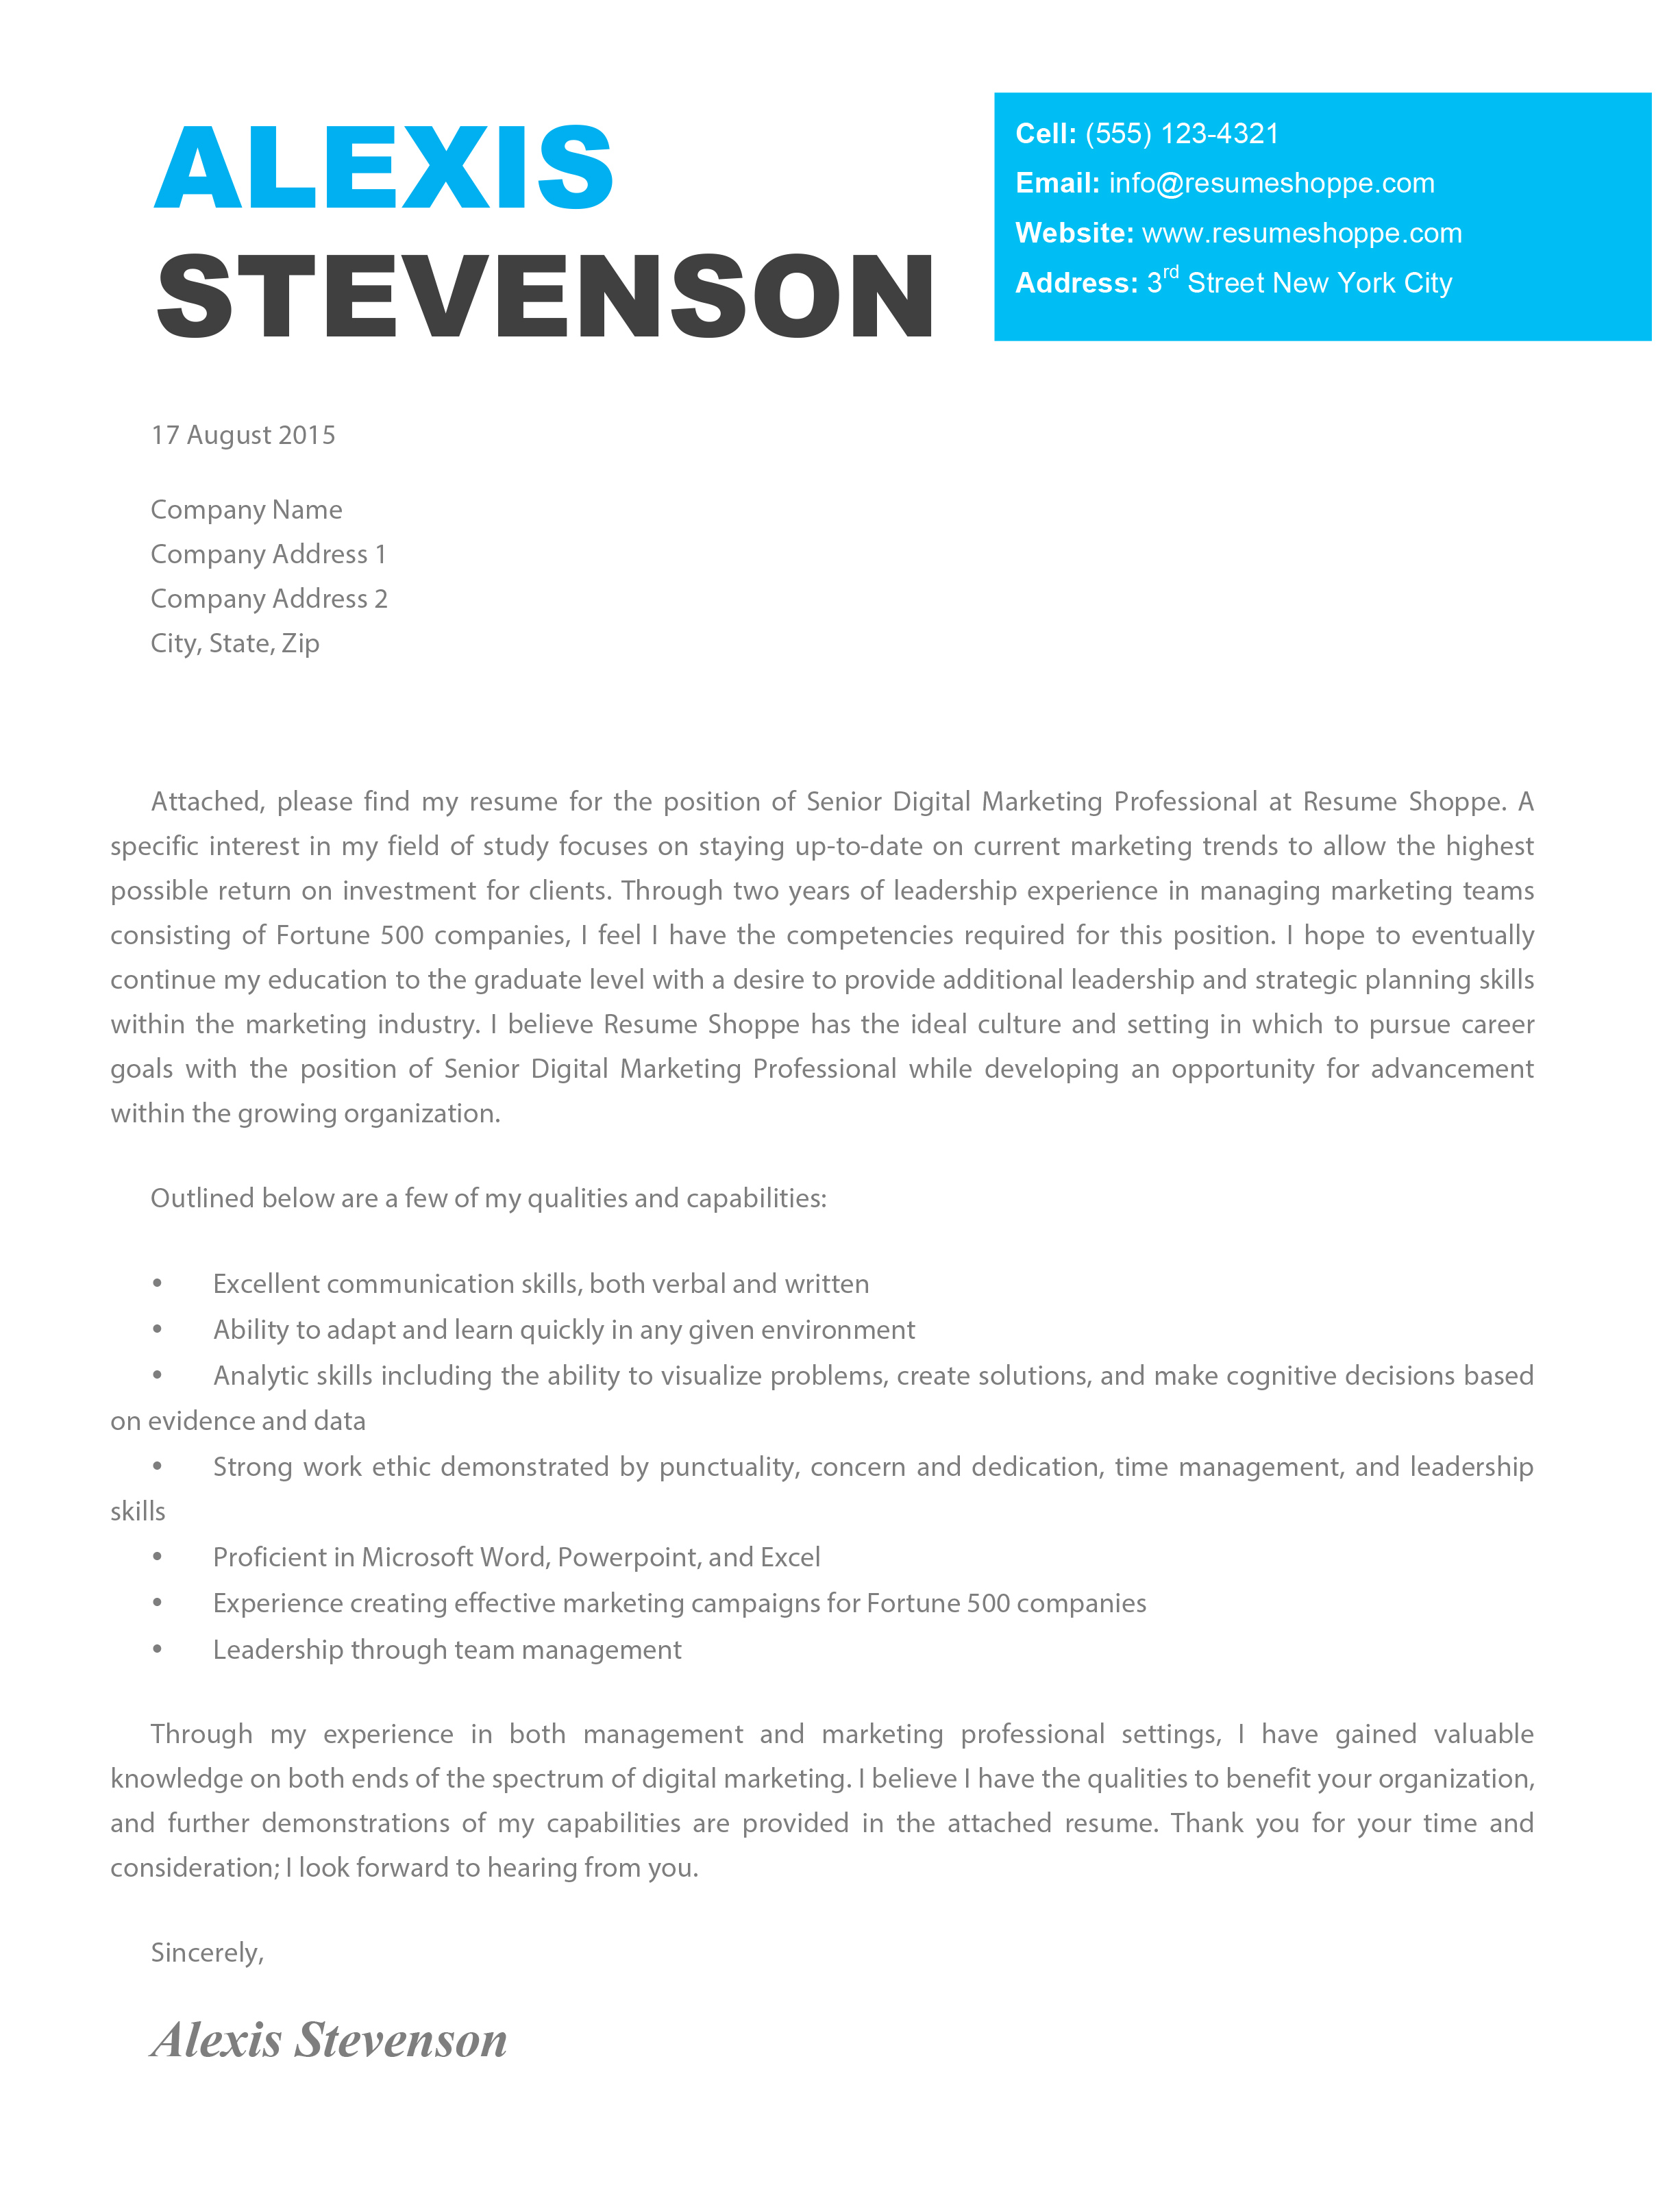 The Alexis Cover Letter Creative Cover Letter - Customer service cover letter template free